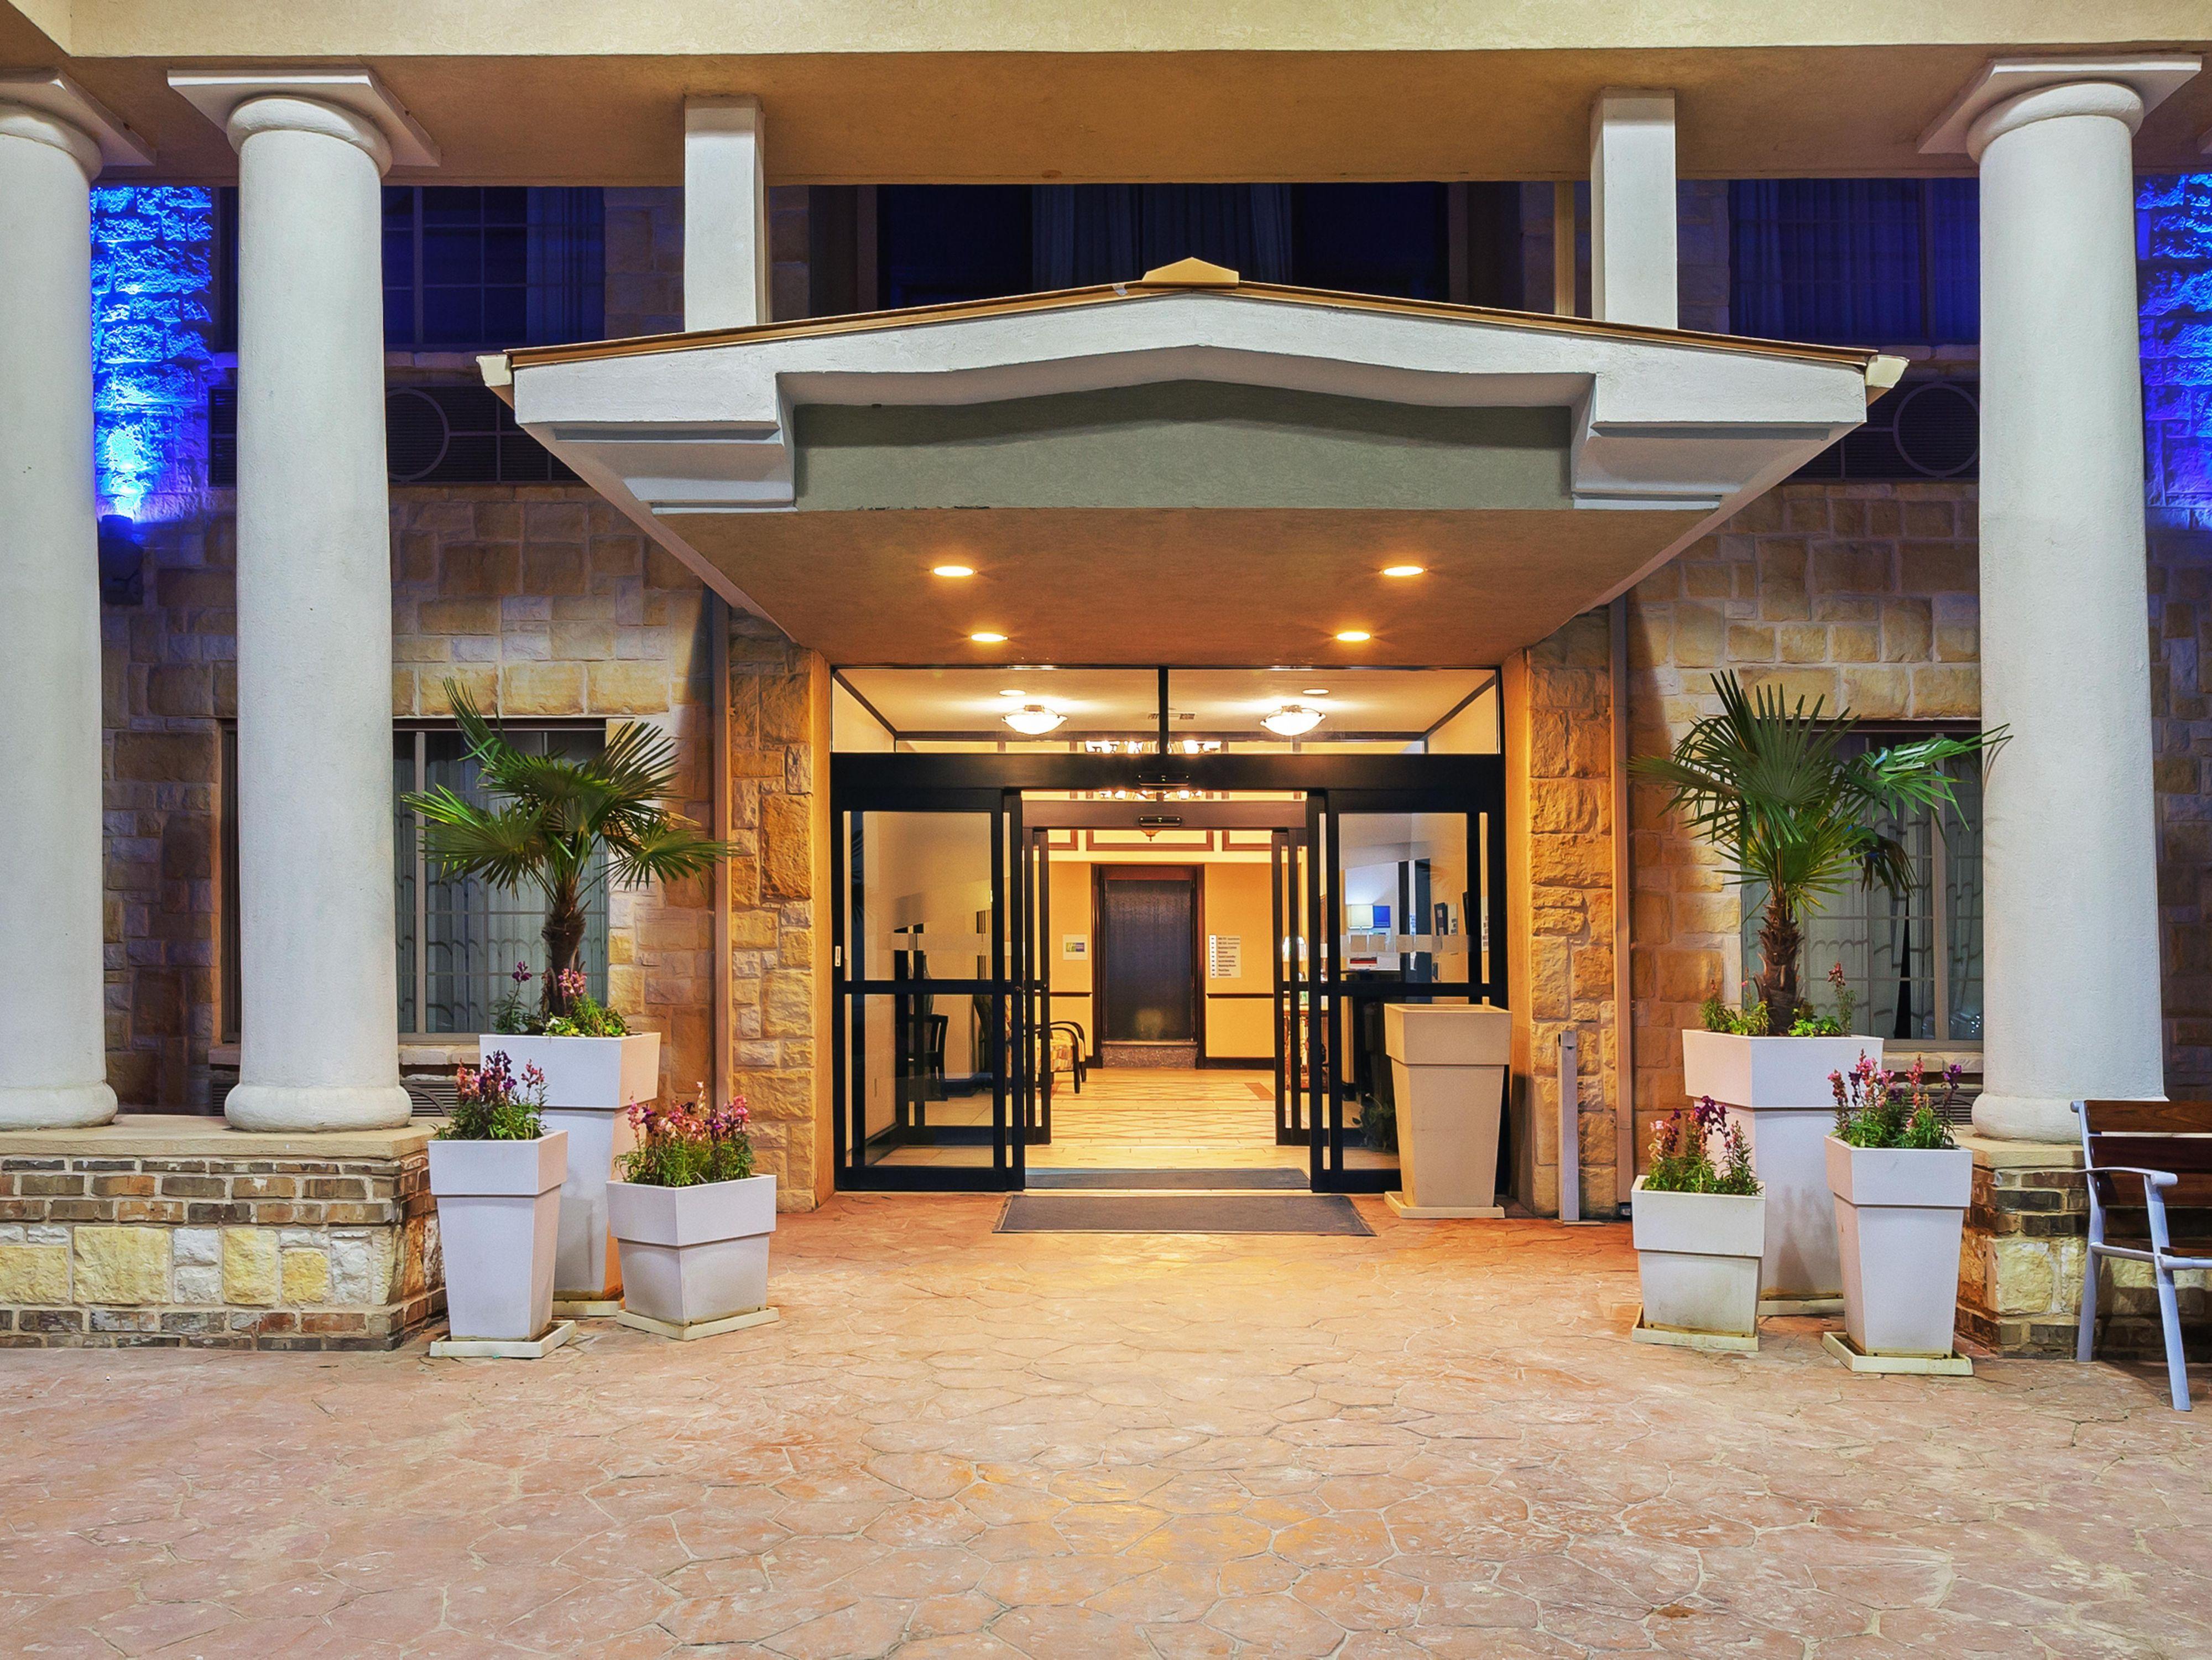 Our inviting hotel entrance.